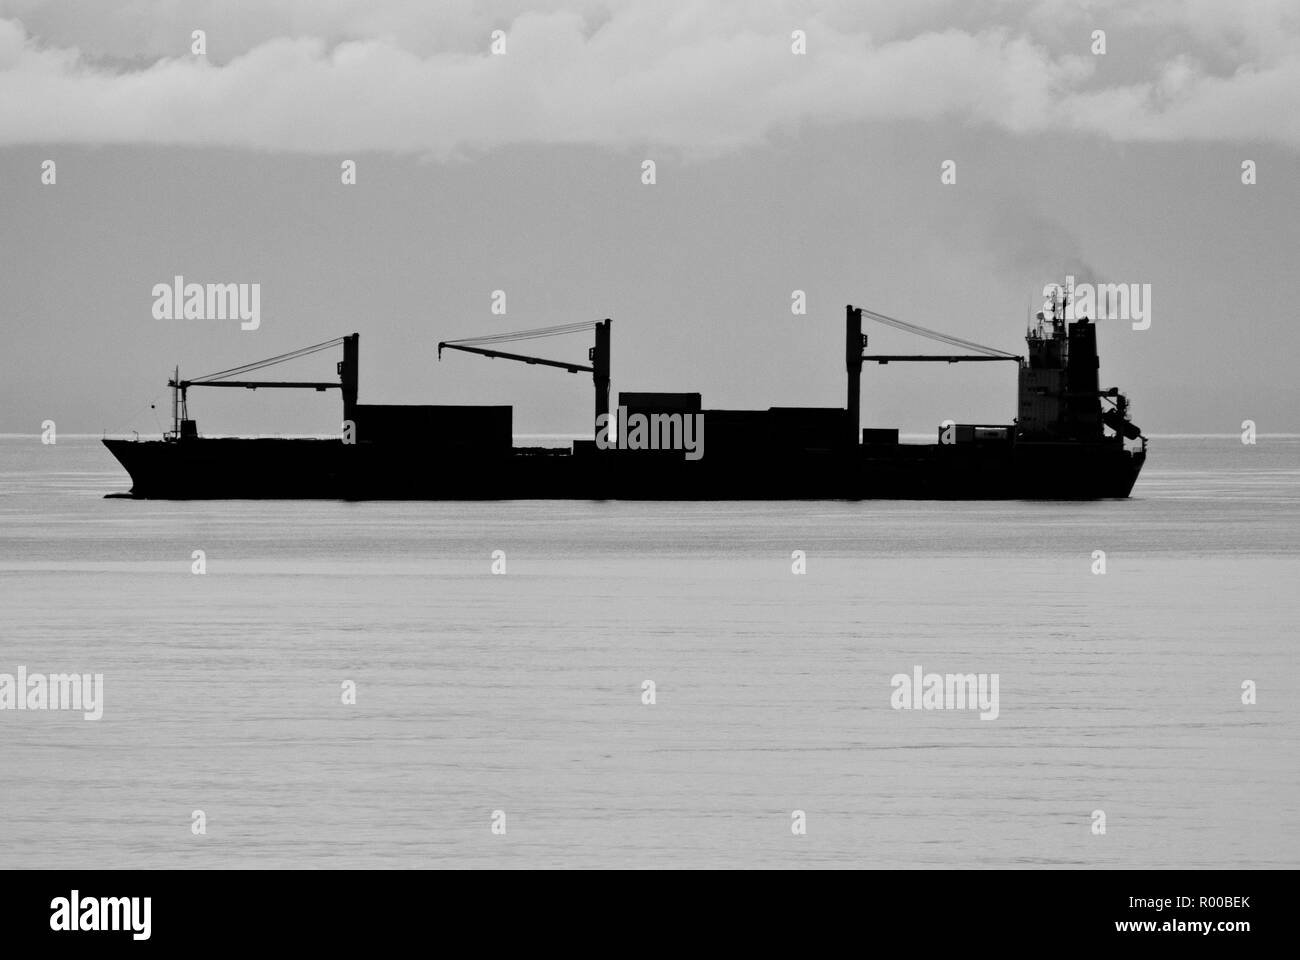 Silhouette of Cargo Ship (Freighter) at Sea - Stock Image